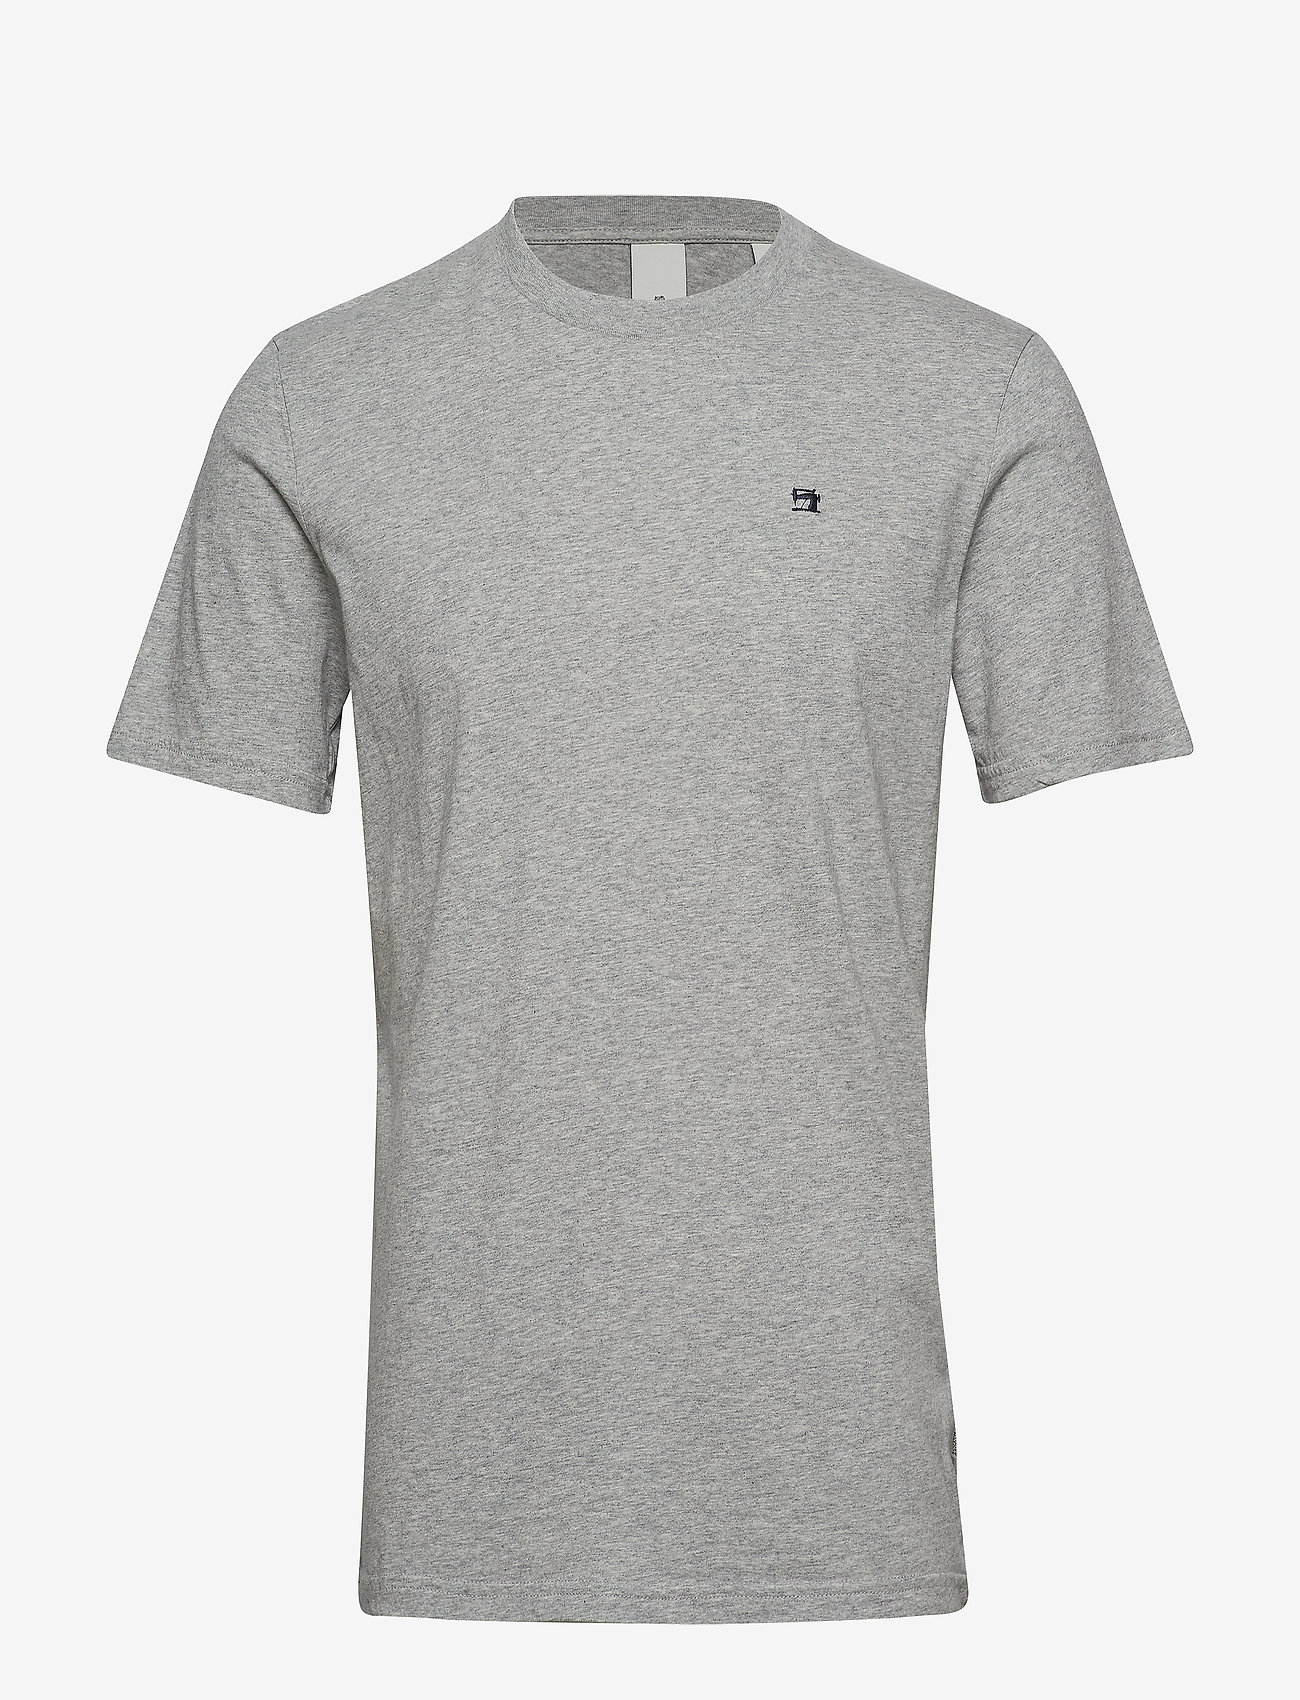 Scotch & Soda - Cotton tee with wider neck rib - t-shirts basiques - grey melange - 0